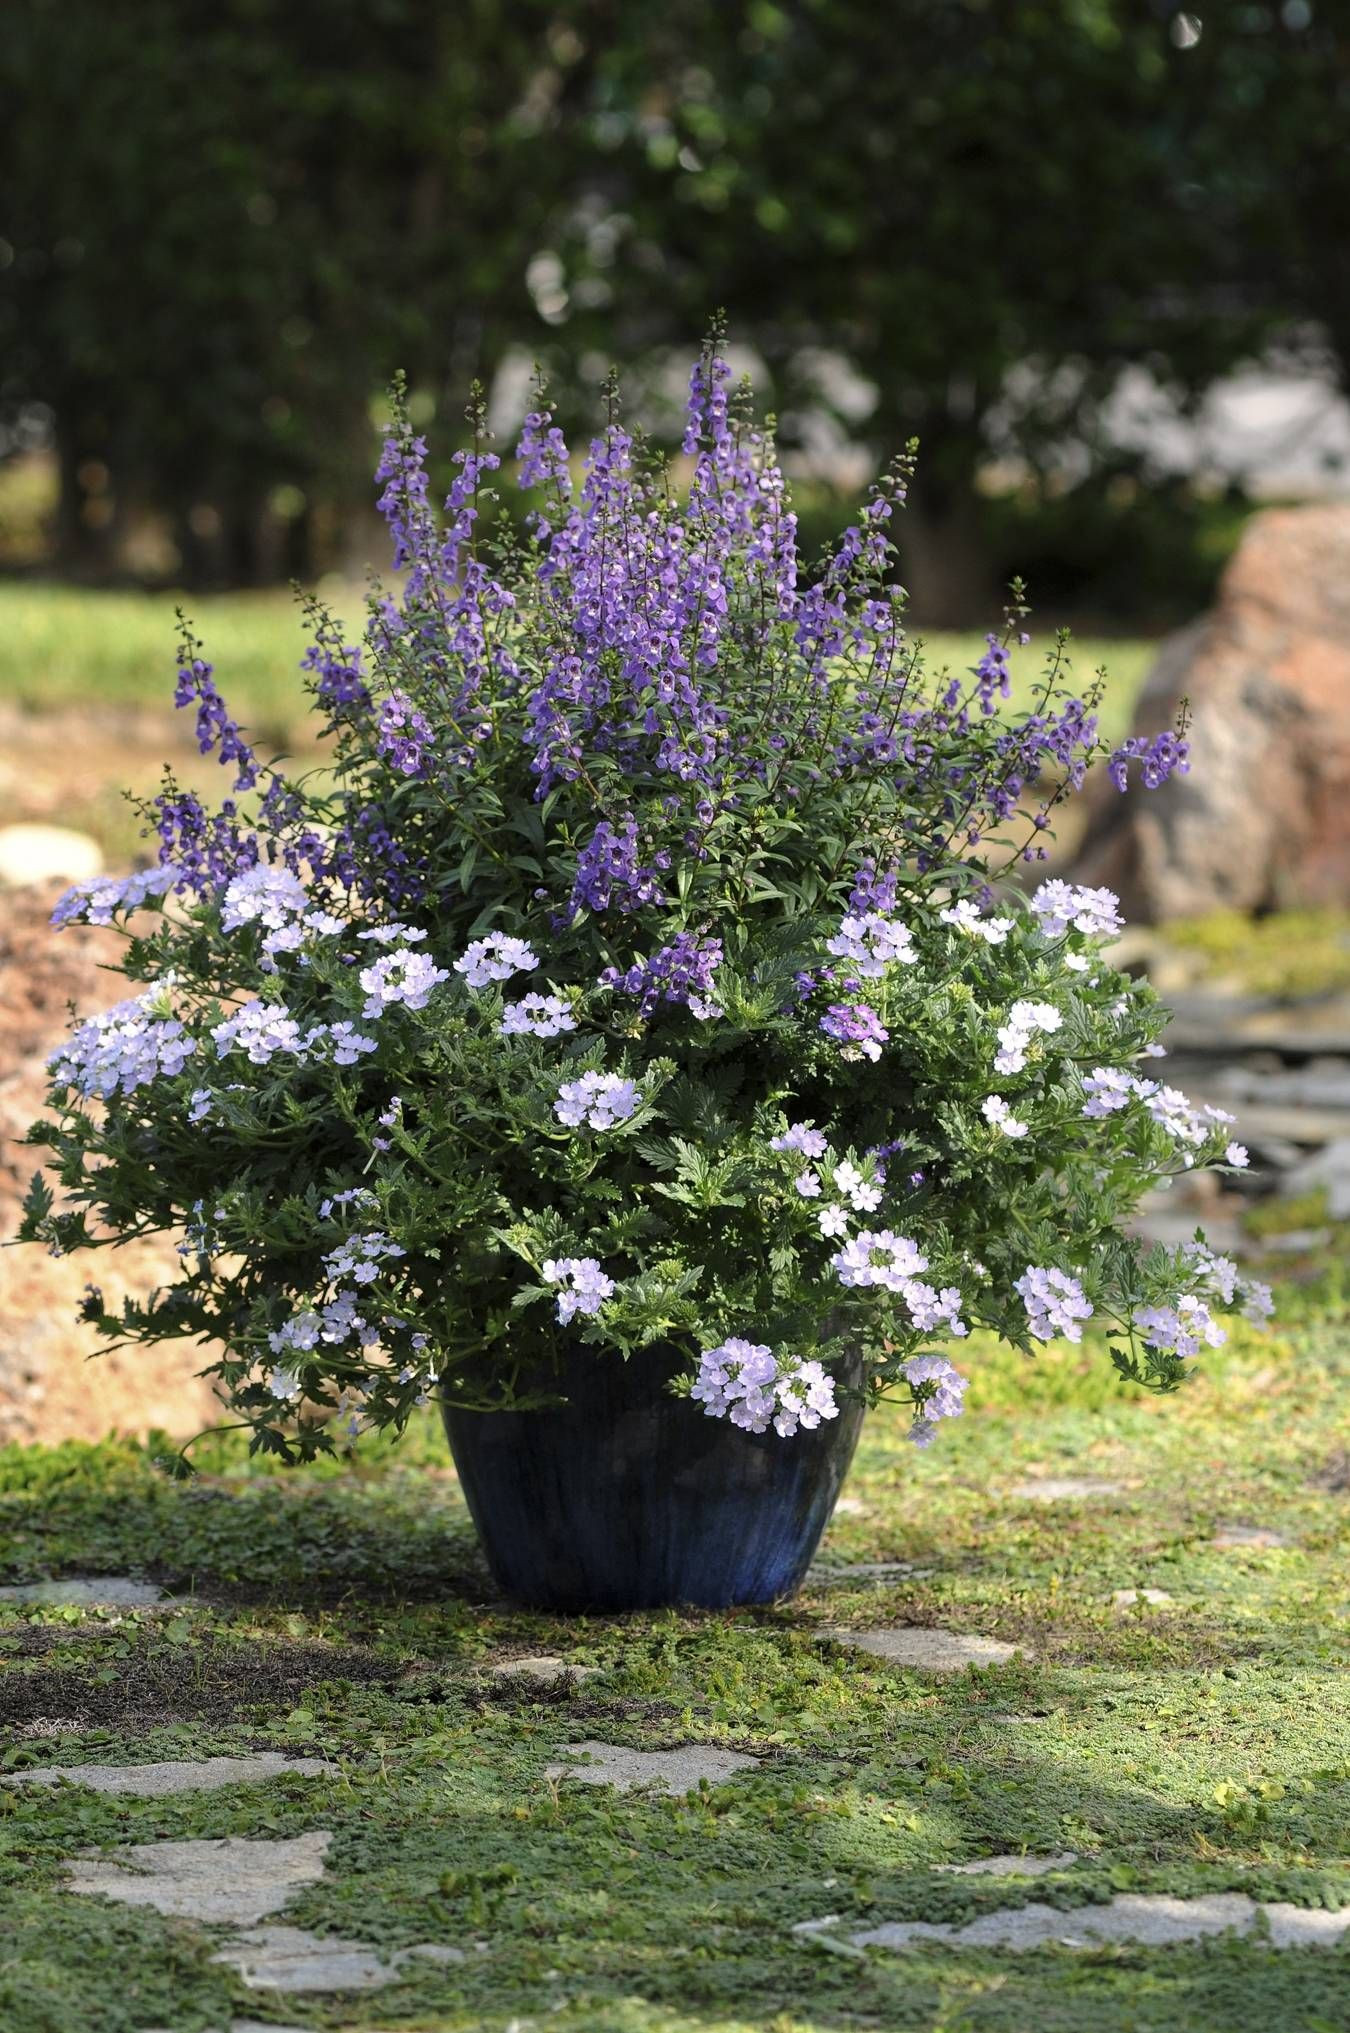 Gardeners should acquainted with this heat tolerant long lasting annual that blooms